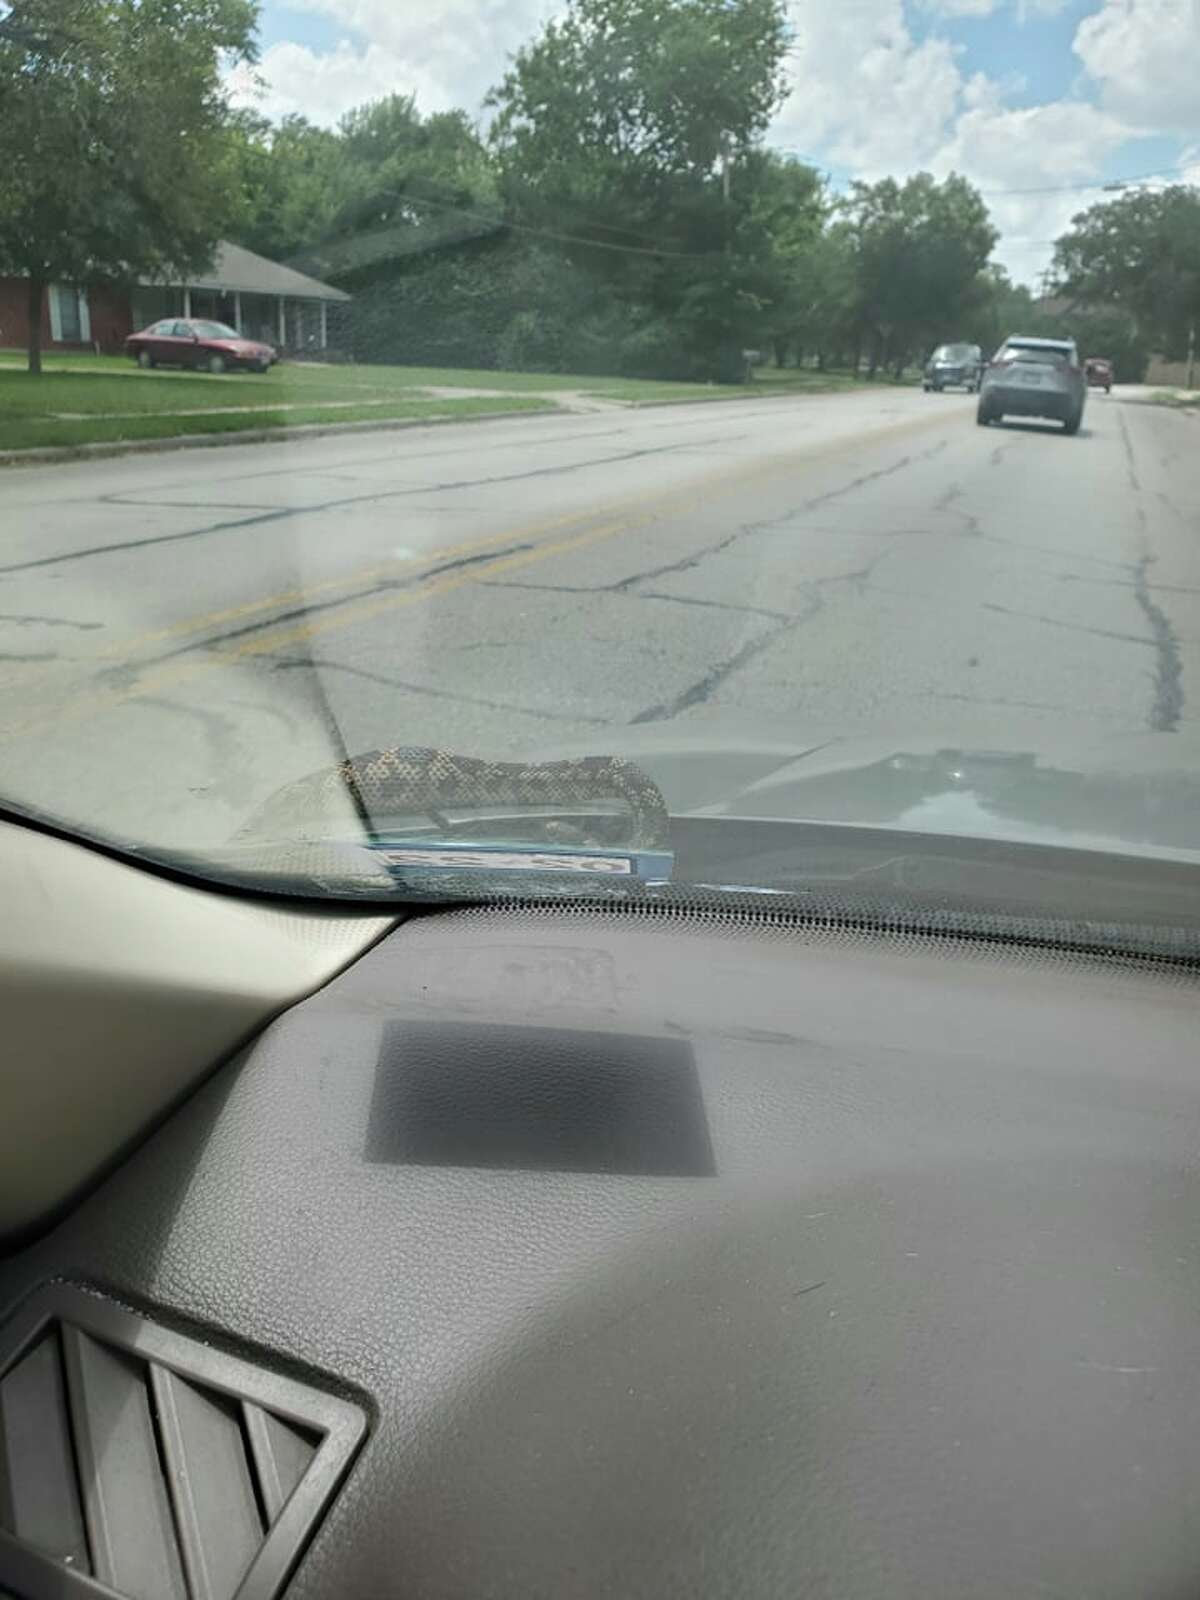 Enzo Sanchez captured photos of a 3-foot snake coming out of his car while driving in Lockhart.